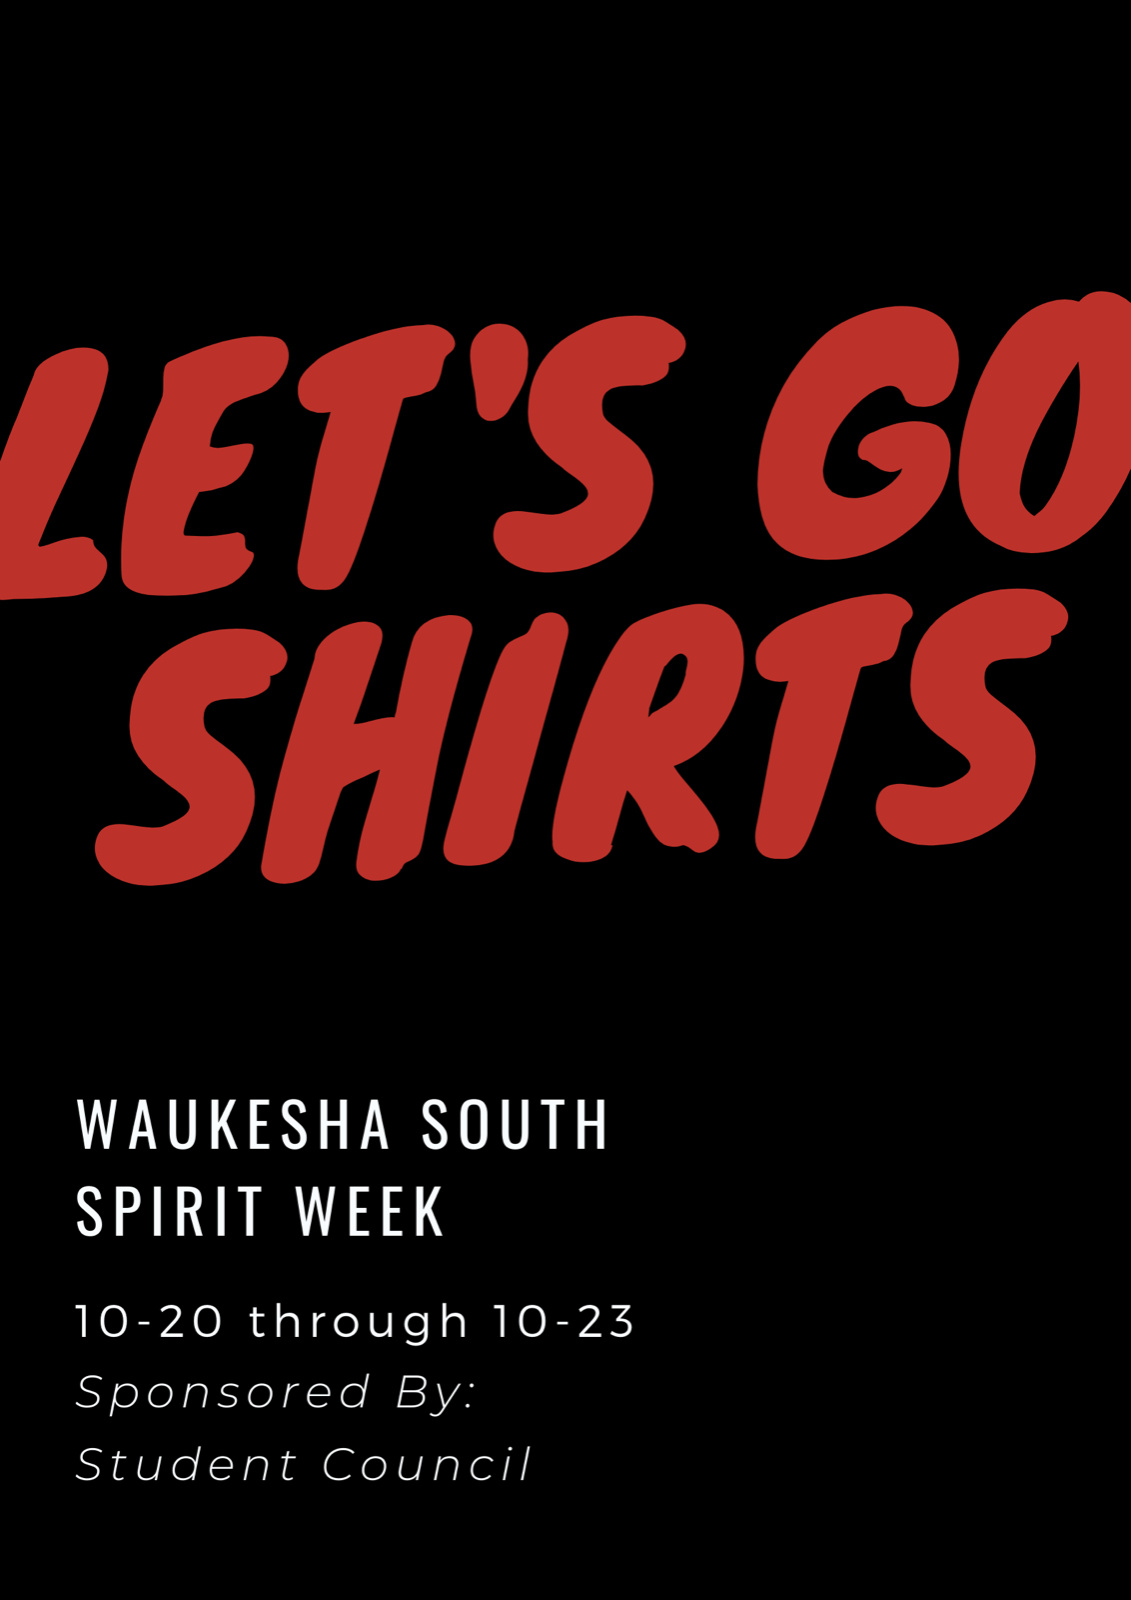 Student Council To Hold Spirit Week